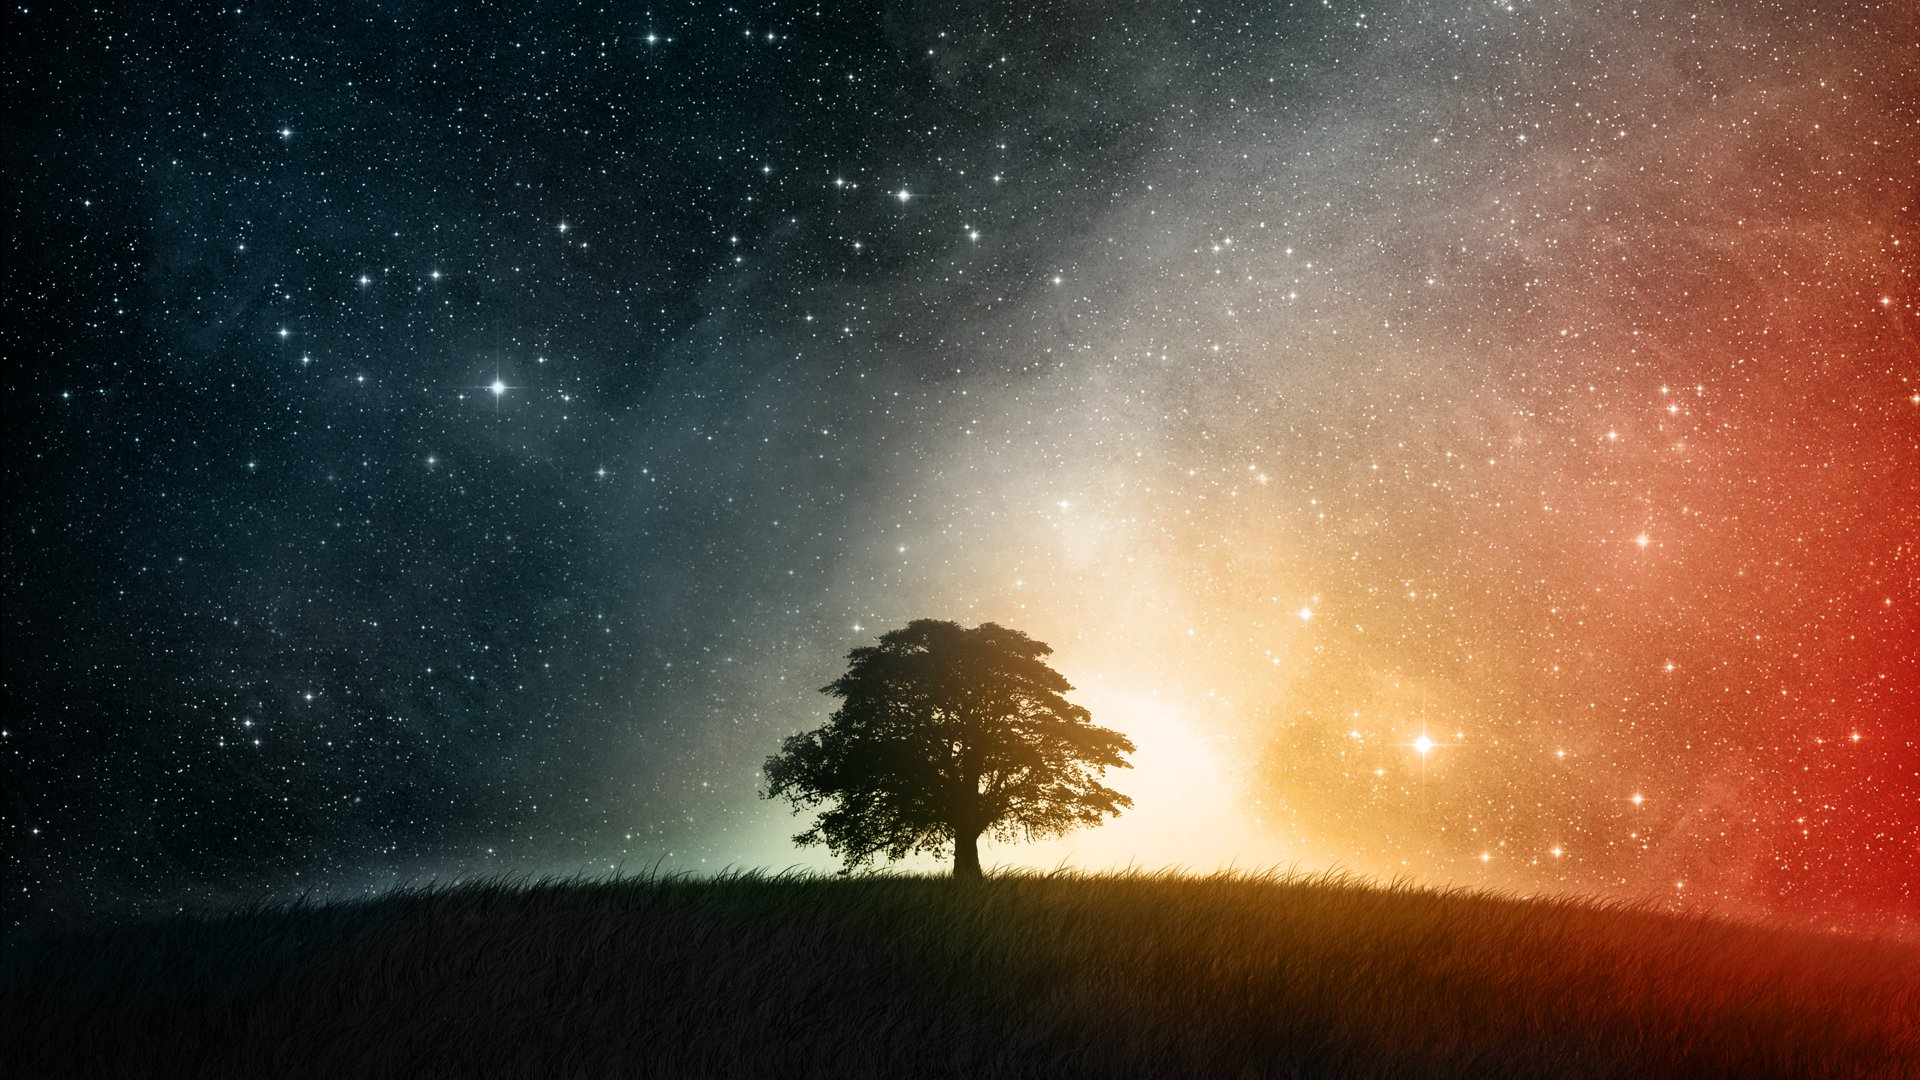 galaxy-wallpapers-22-1